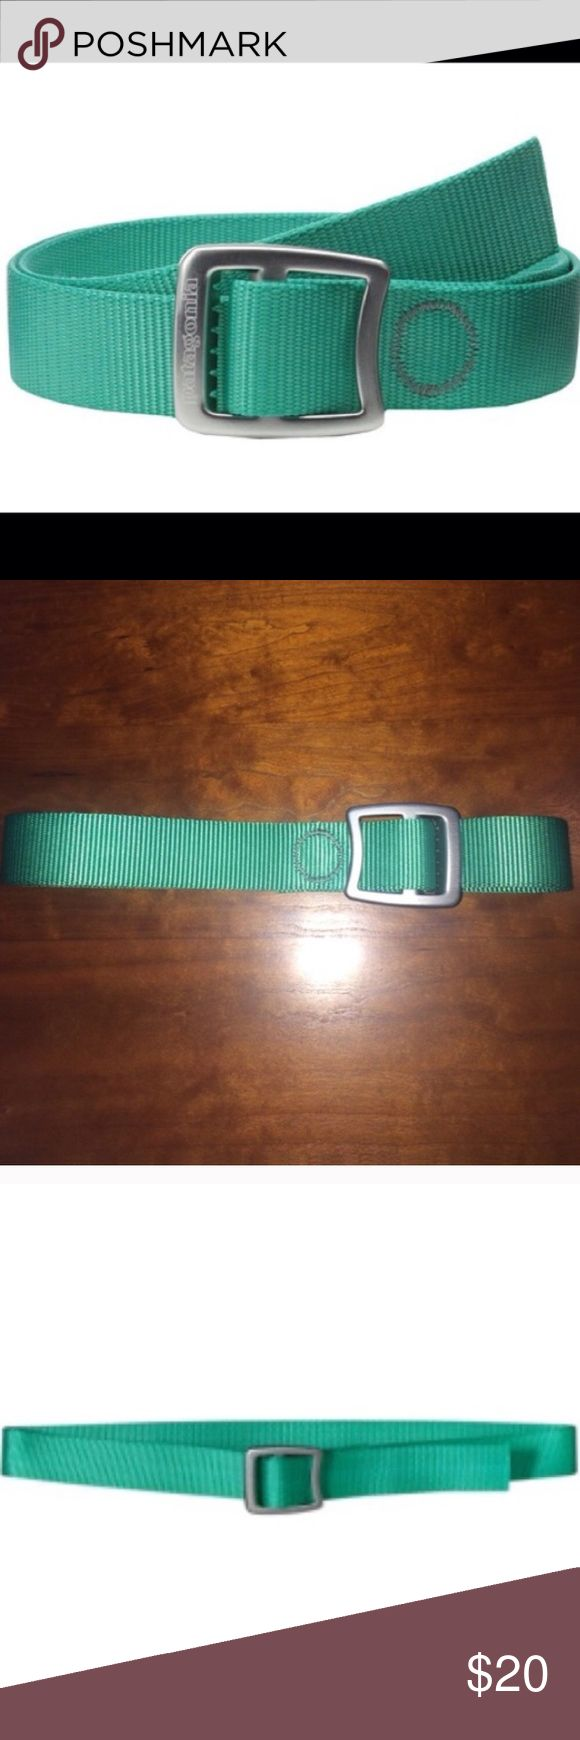 """🎉2xHP Men's Patagonia Tech Web Belt Green 🎉2x HOST PICK Patagonia Tech Web Belt. Bright Green Color. The burly Tech Web Belt has a forged aluminum buckle that's lightweight, strong, & cinches tight for a reliable hitch; also handy a bottle opener. Strong and quick-drying 1½"""" polyester webbing doubles as an emergency lash strap Forged aluminum buckle is tough, lightweight & notched to pry off a bottle cap Belt length: 46.5"""" In very good condition. Please ask any questions  💲Open To…"""